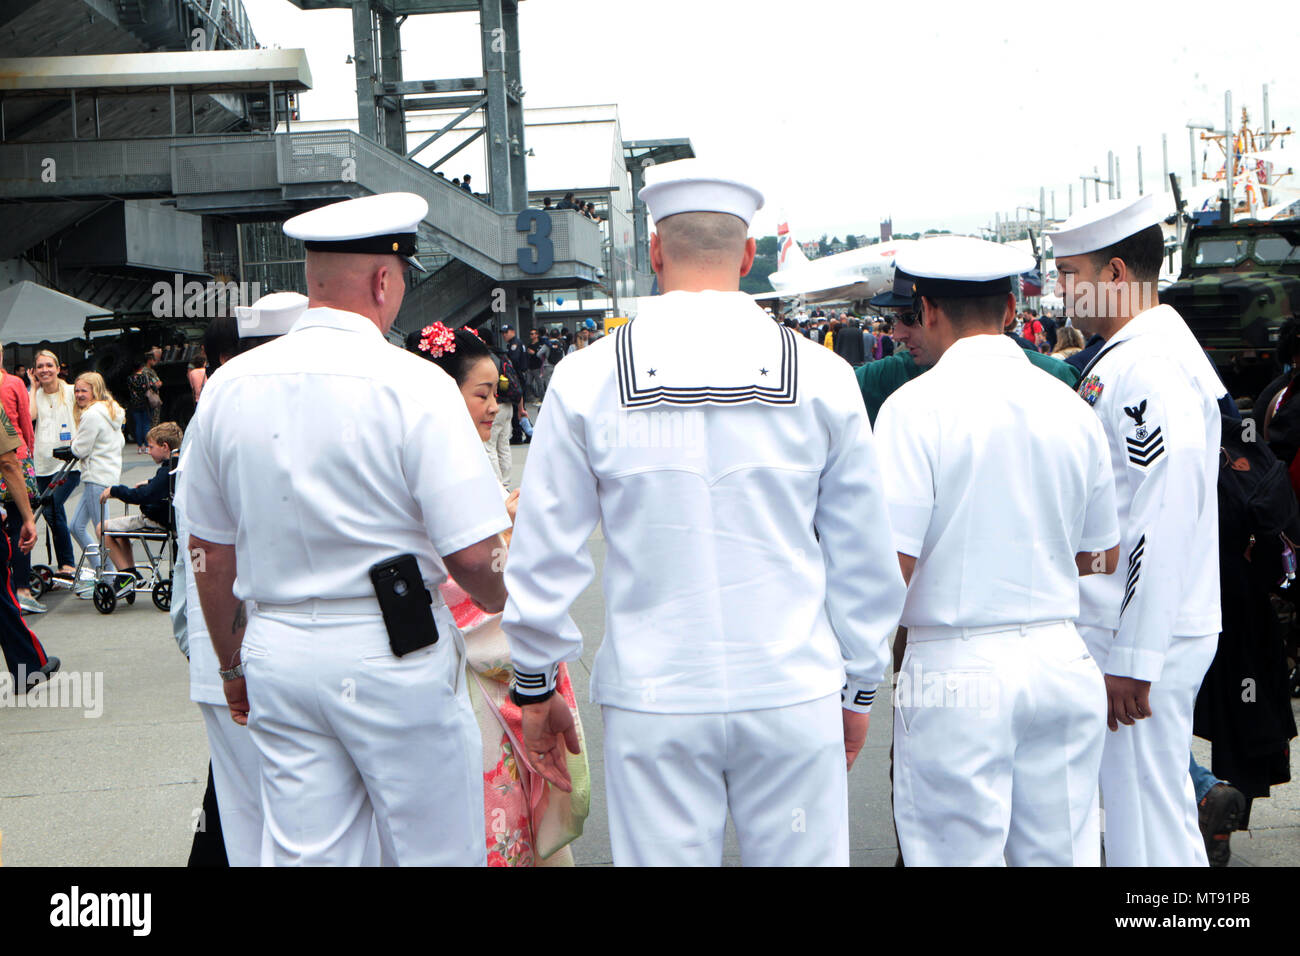 New York, NY, USA. 28th May, 2018. United States Navy Sailors attends the 2018 Memorial Day Ceremony held aboard the U.S.S Intrepid Sea, Air, Space Museum Complex on May 28, 2018 in New York City. Credit: Mpi43/Media Punch/Alamy Live News - Stock Image